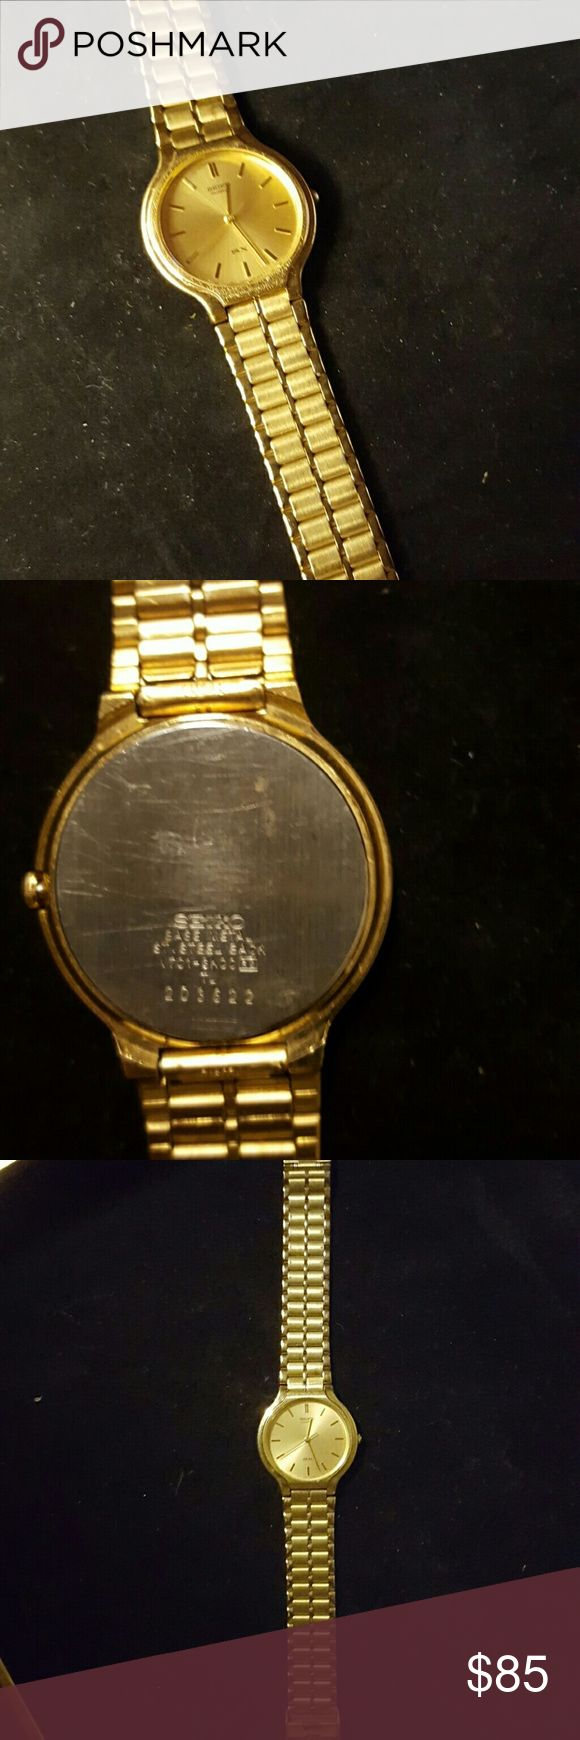 Mens seiko sx watch Beautiful gold colored watch with no scratches on face. 9 inches in length Seiko Accessories Watches